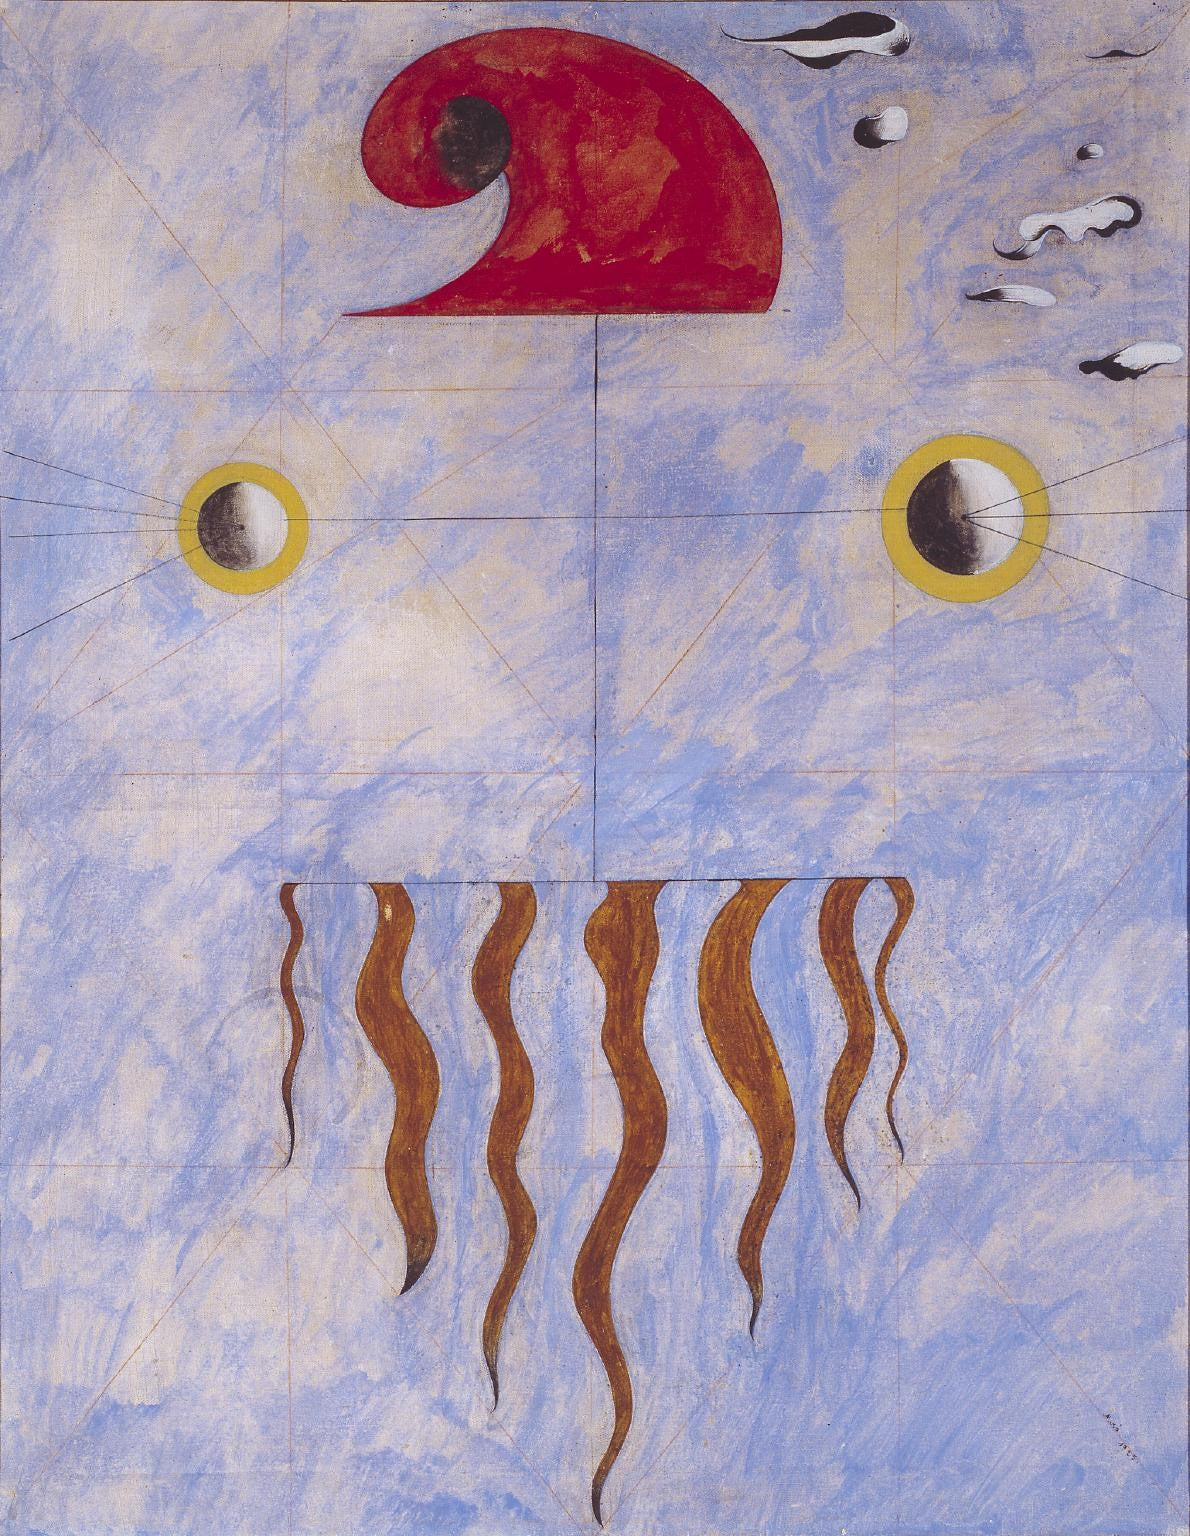 Joan Miró, Head of a Catalan Peasant, 1925, image via Tate, London